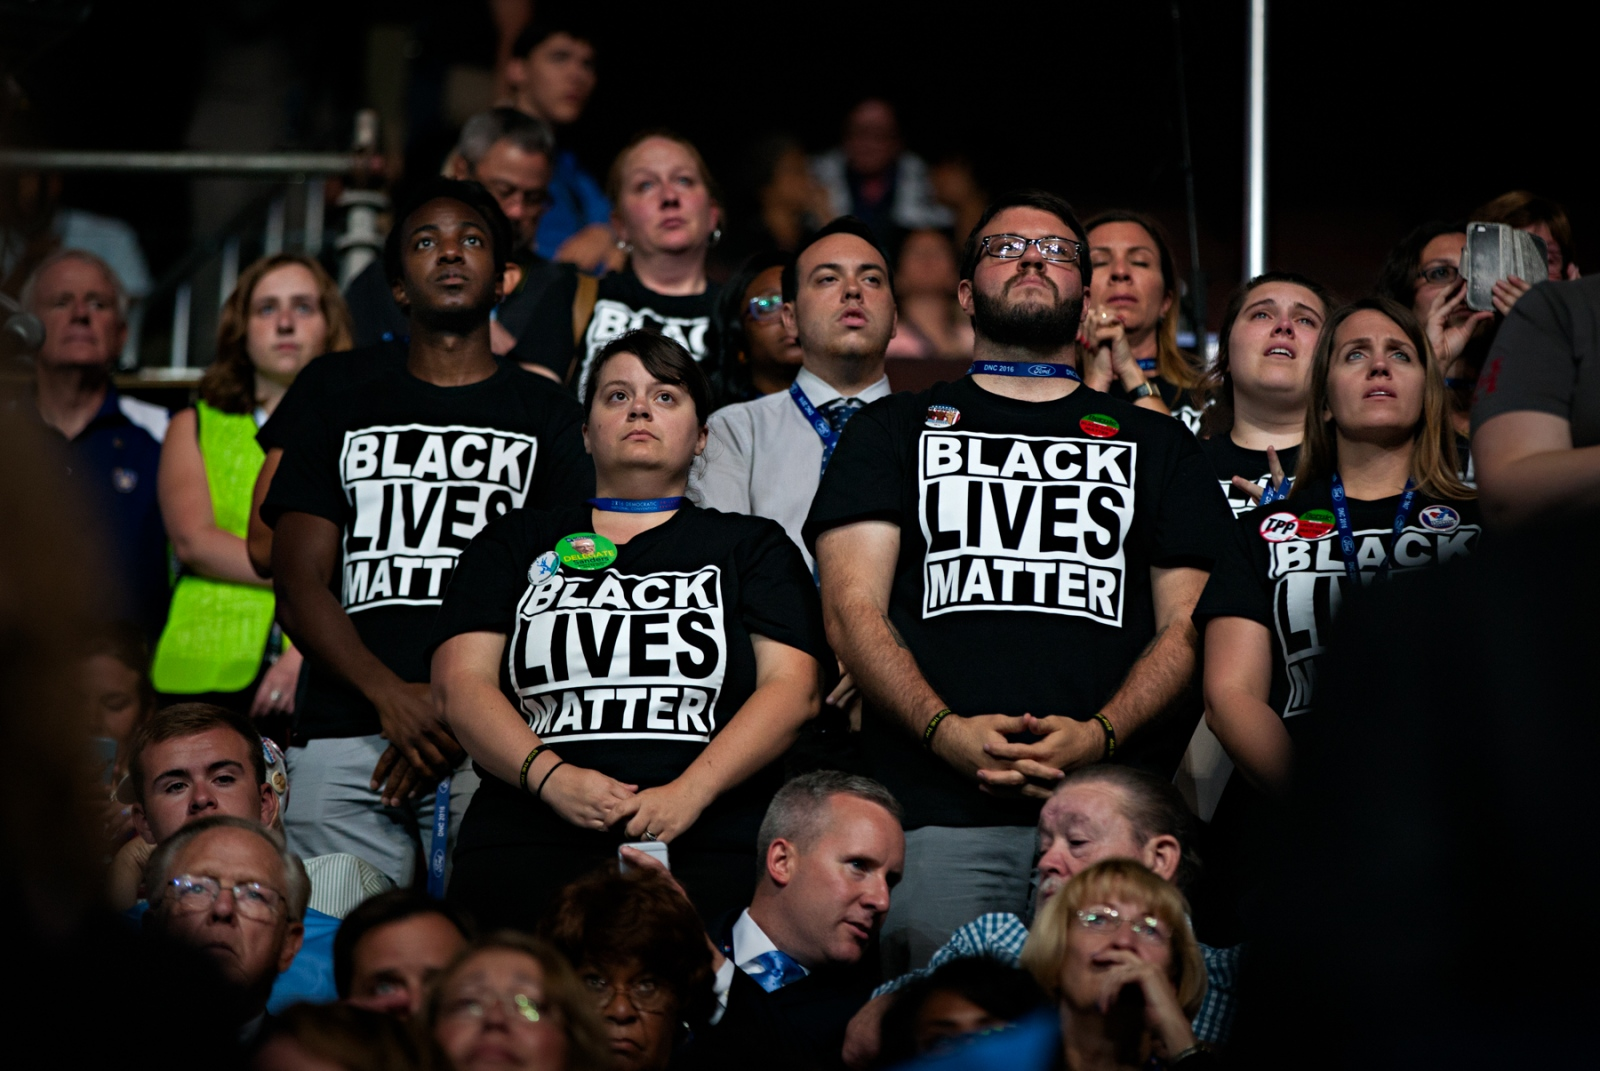 July 26, 2016 - Philadelphia, Pennsylvania - Black Lives Matter supporters stand in defiance during the Democratic National Convention when it became clear that Hillary Clinton was going to be the nominee. Bernie Sander supporters believed that the DNC was actively supporting Hillary Clinton in contravention of the DNC rules to remain neutral in the process.